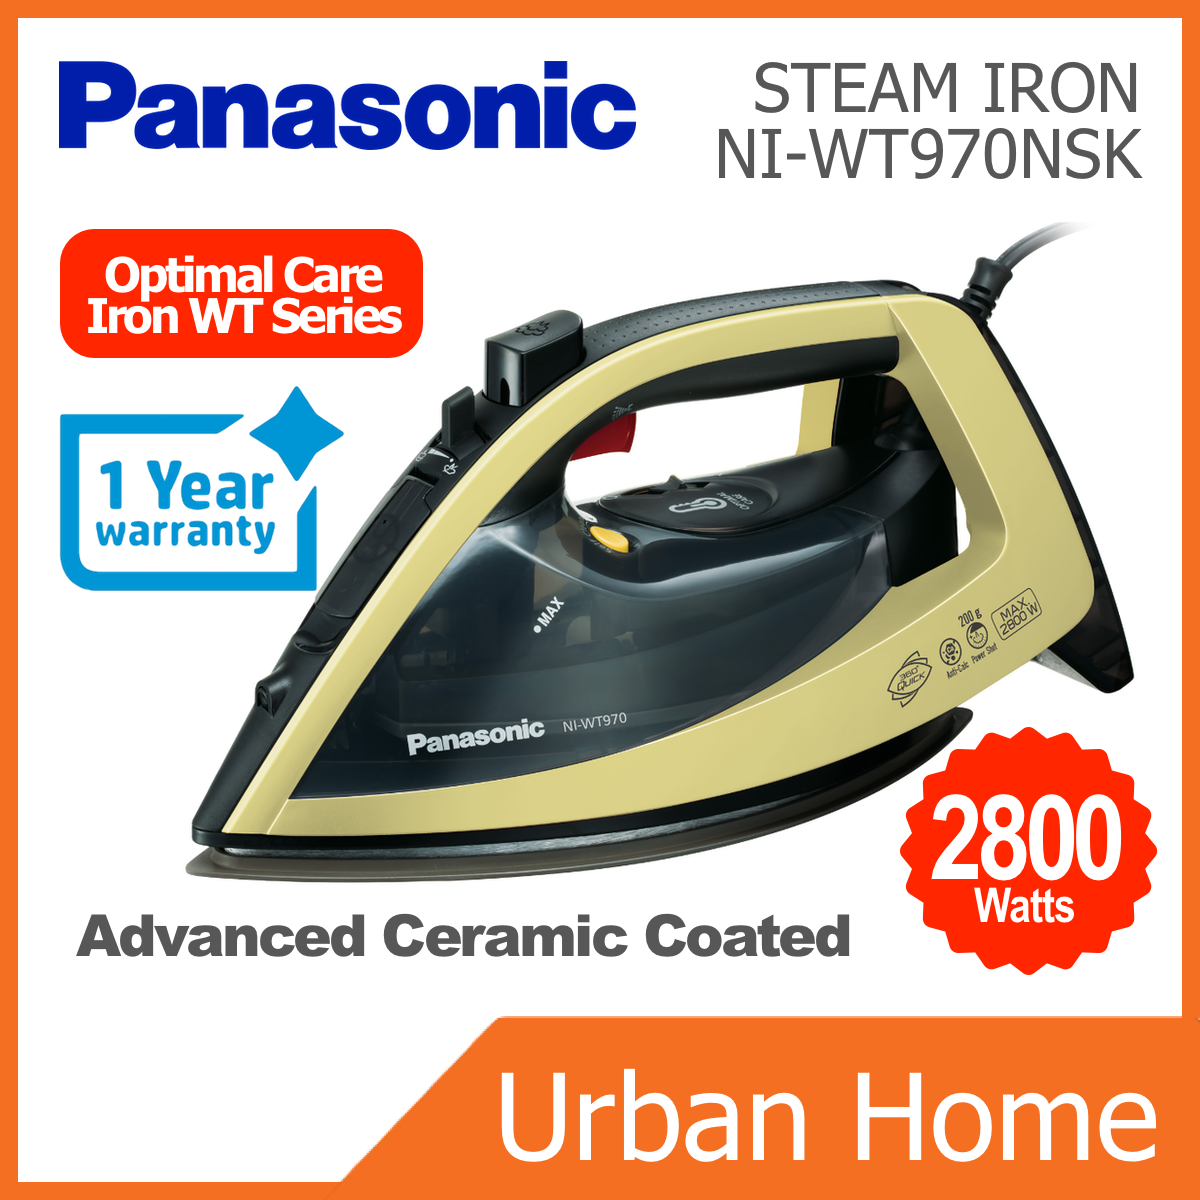 PANASONIC WT-Series Optimal Stream Iron (NI-WT970NSK/NI-WT970/NIWT970NSK/NIWT970)